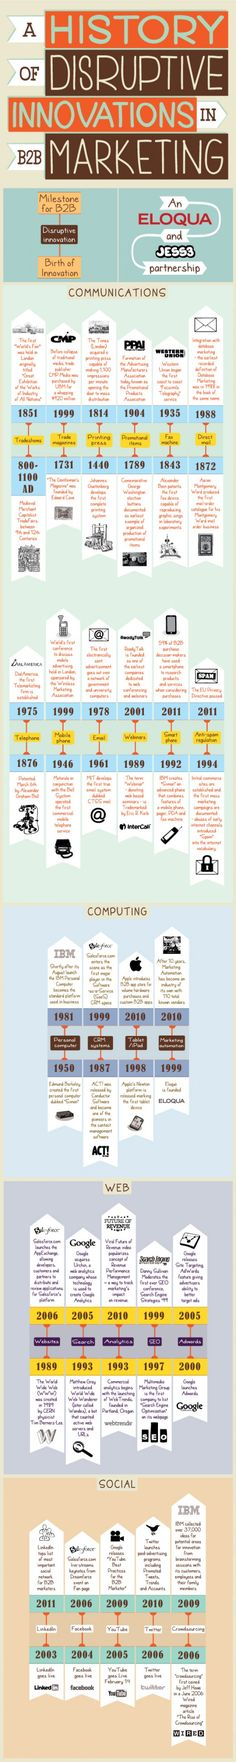 """A History of Disruptive Innovations in B2B Marketing. Interesting underlying POV in this - """"disruptive innovation"""" is nothing new. Disruption has been a constant for marketers (even if it doesn't always feel that way). Now of course the question is: why is this wave of disruption so troubling to so many marketers?"""